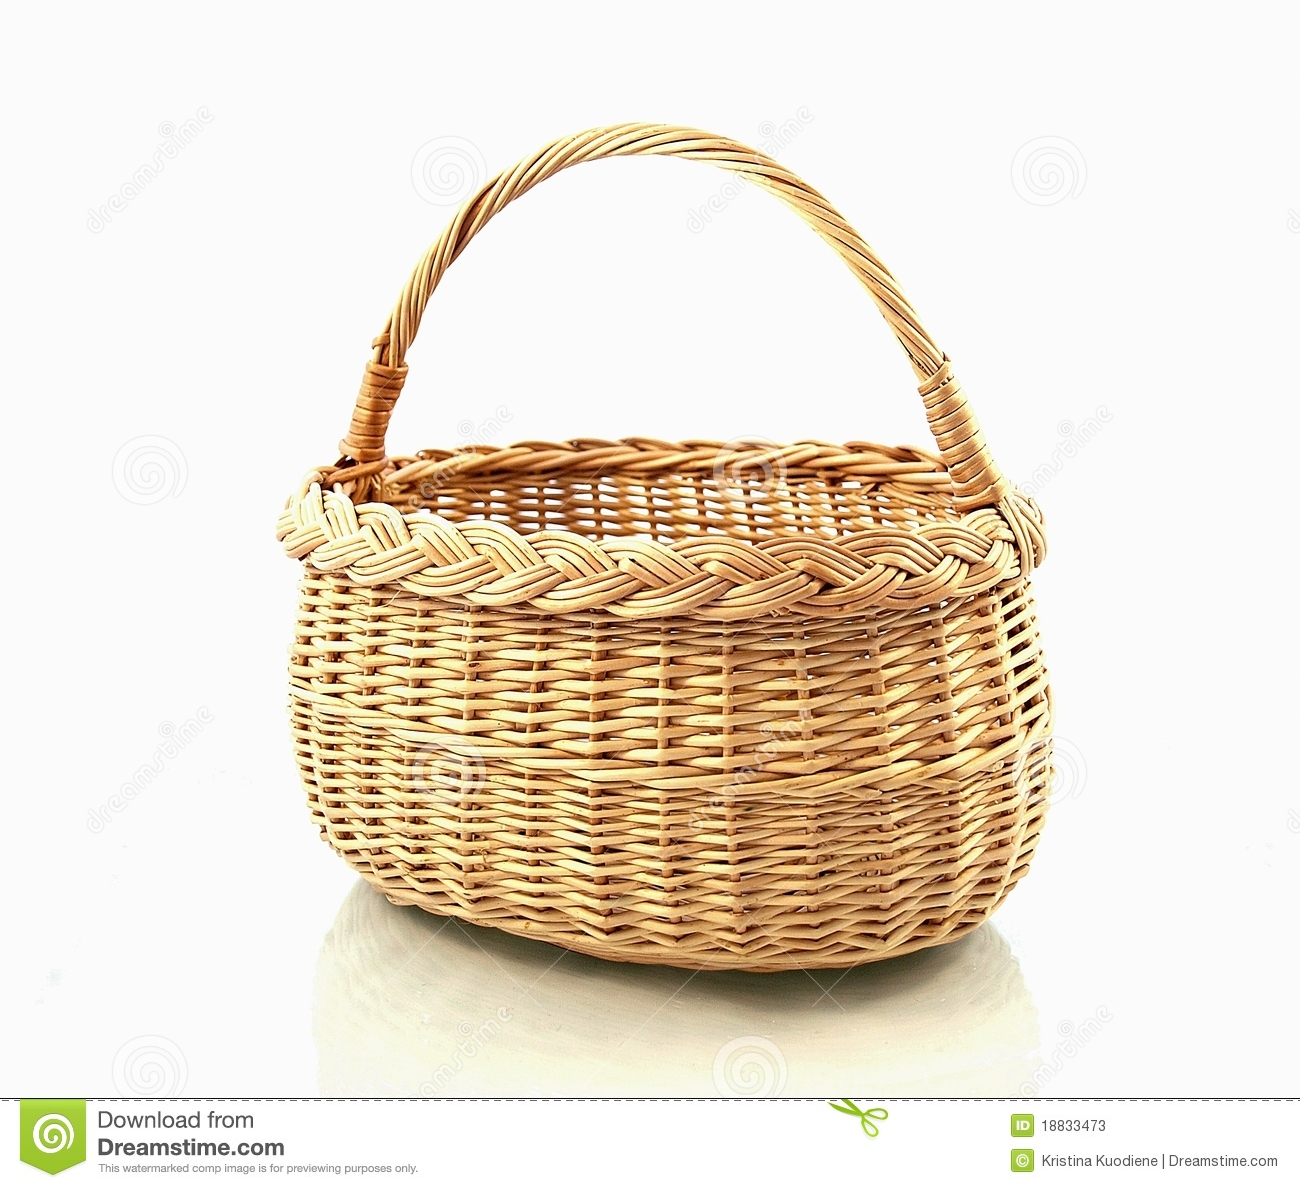 Yellow wood basket on white background.